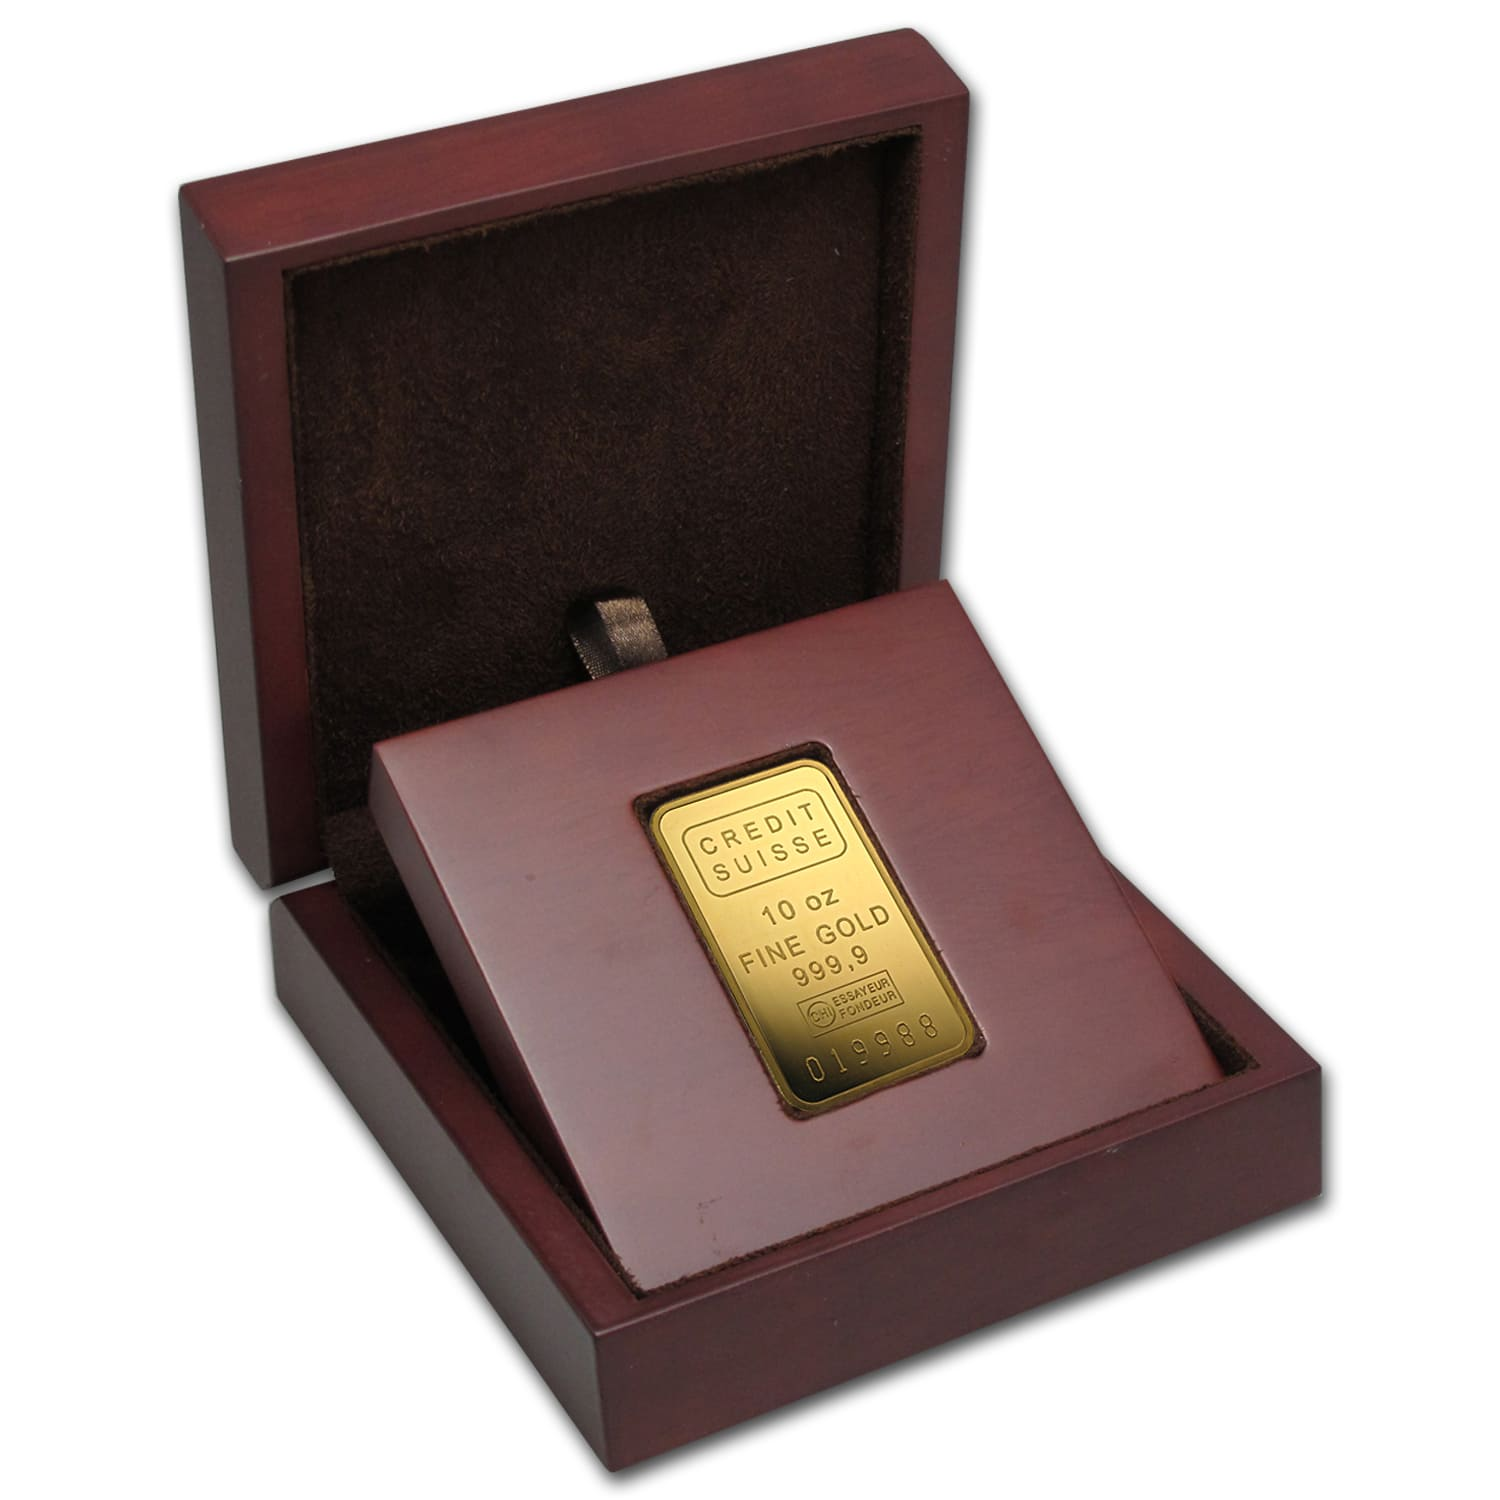 10 oz Gold Bar - Credit Suisse (With Assay)